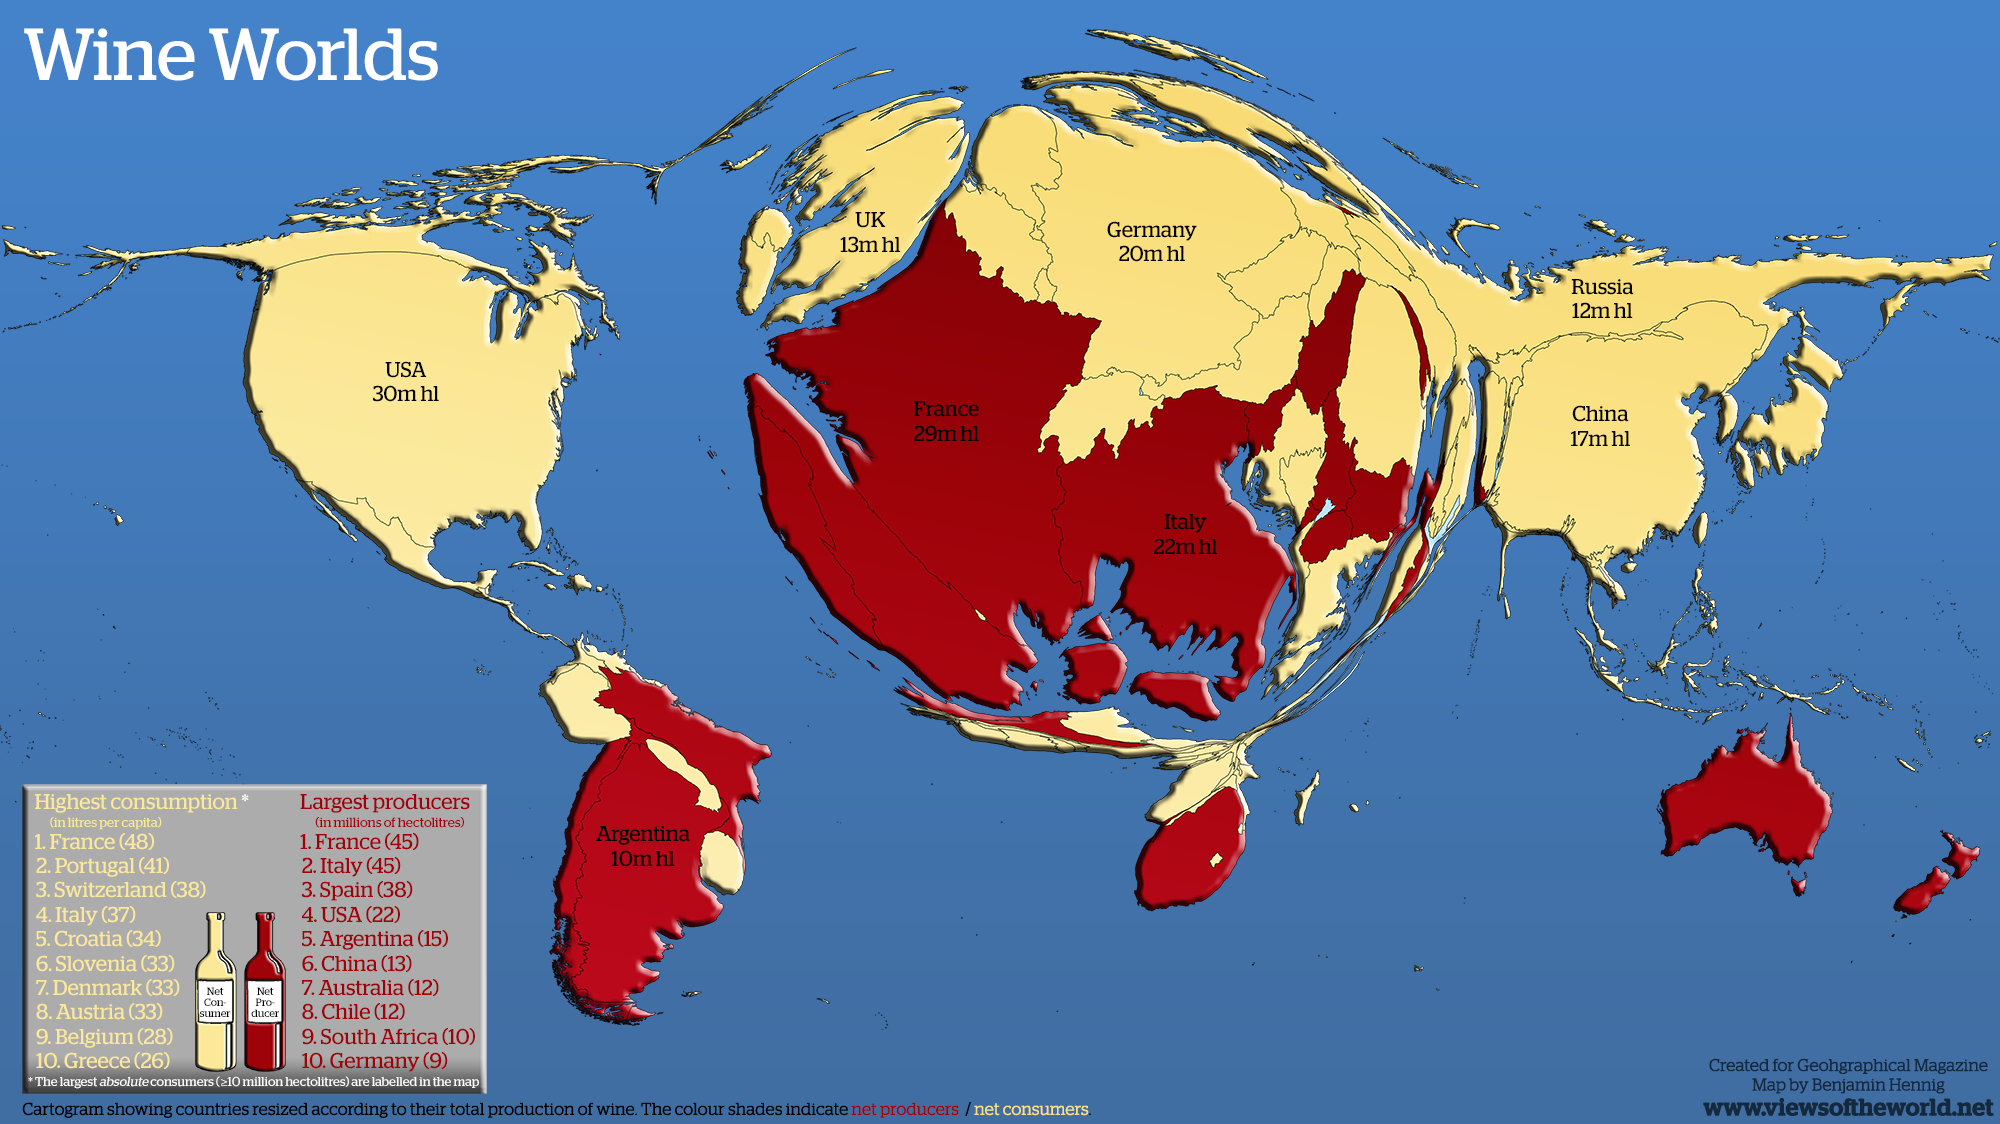 Wine worlds views of the world map of wine production in the world gumiabroncs Choice Image